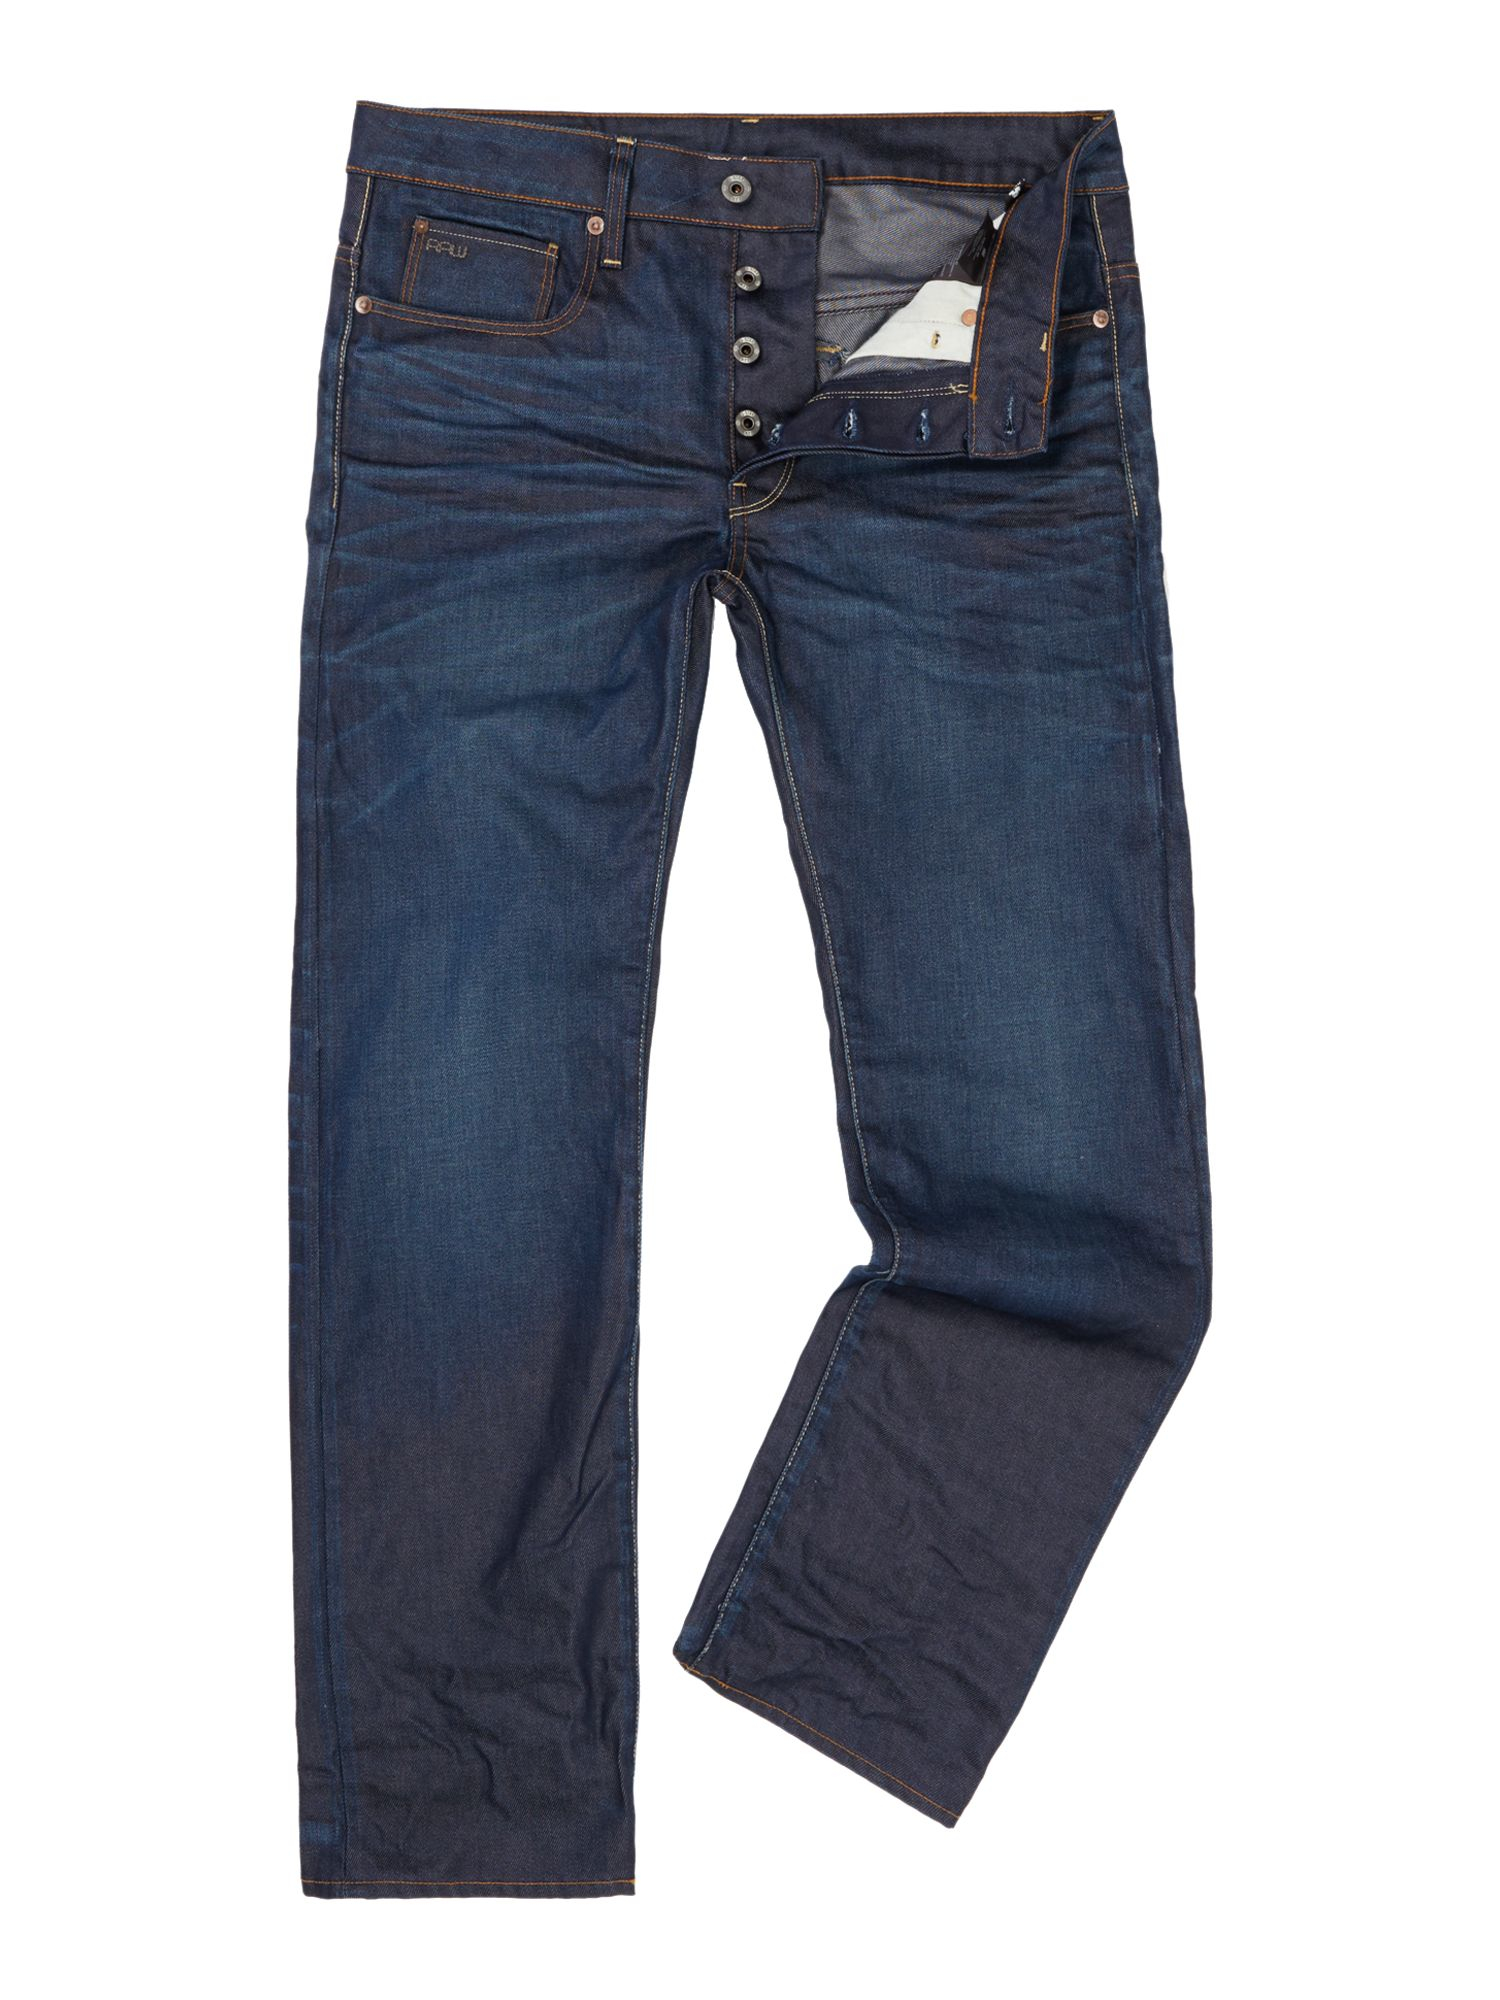 g star raw 3301 straight dark aged hydrite jeans in blue. Black Bedroom Furniture Sets. Home Design Ideas